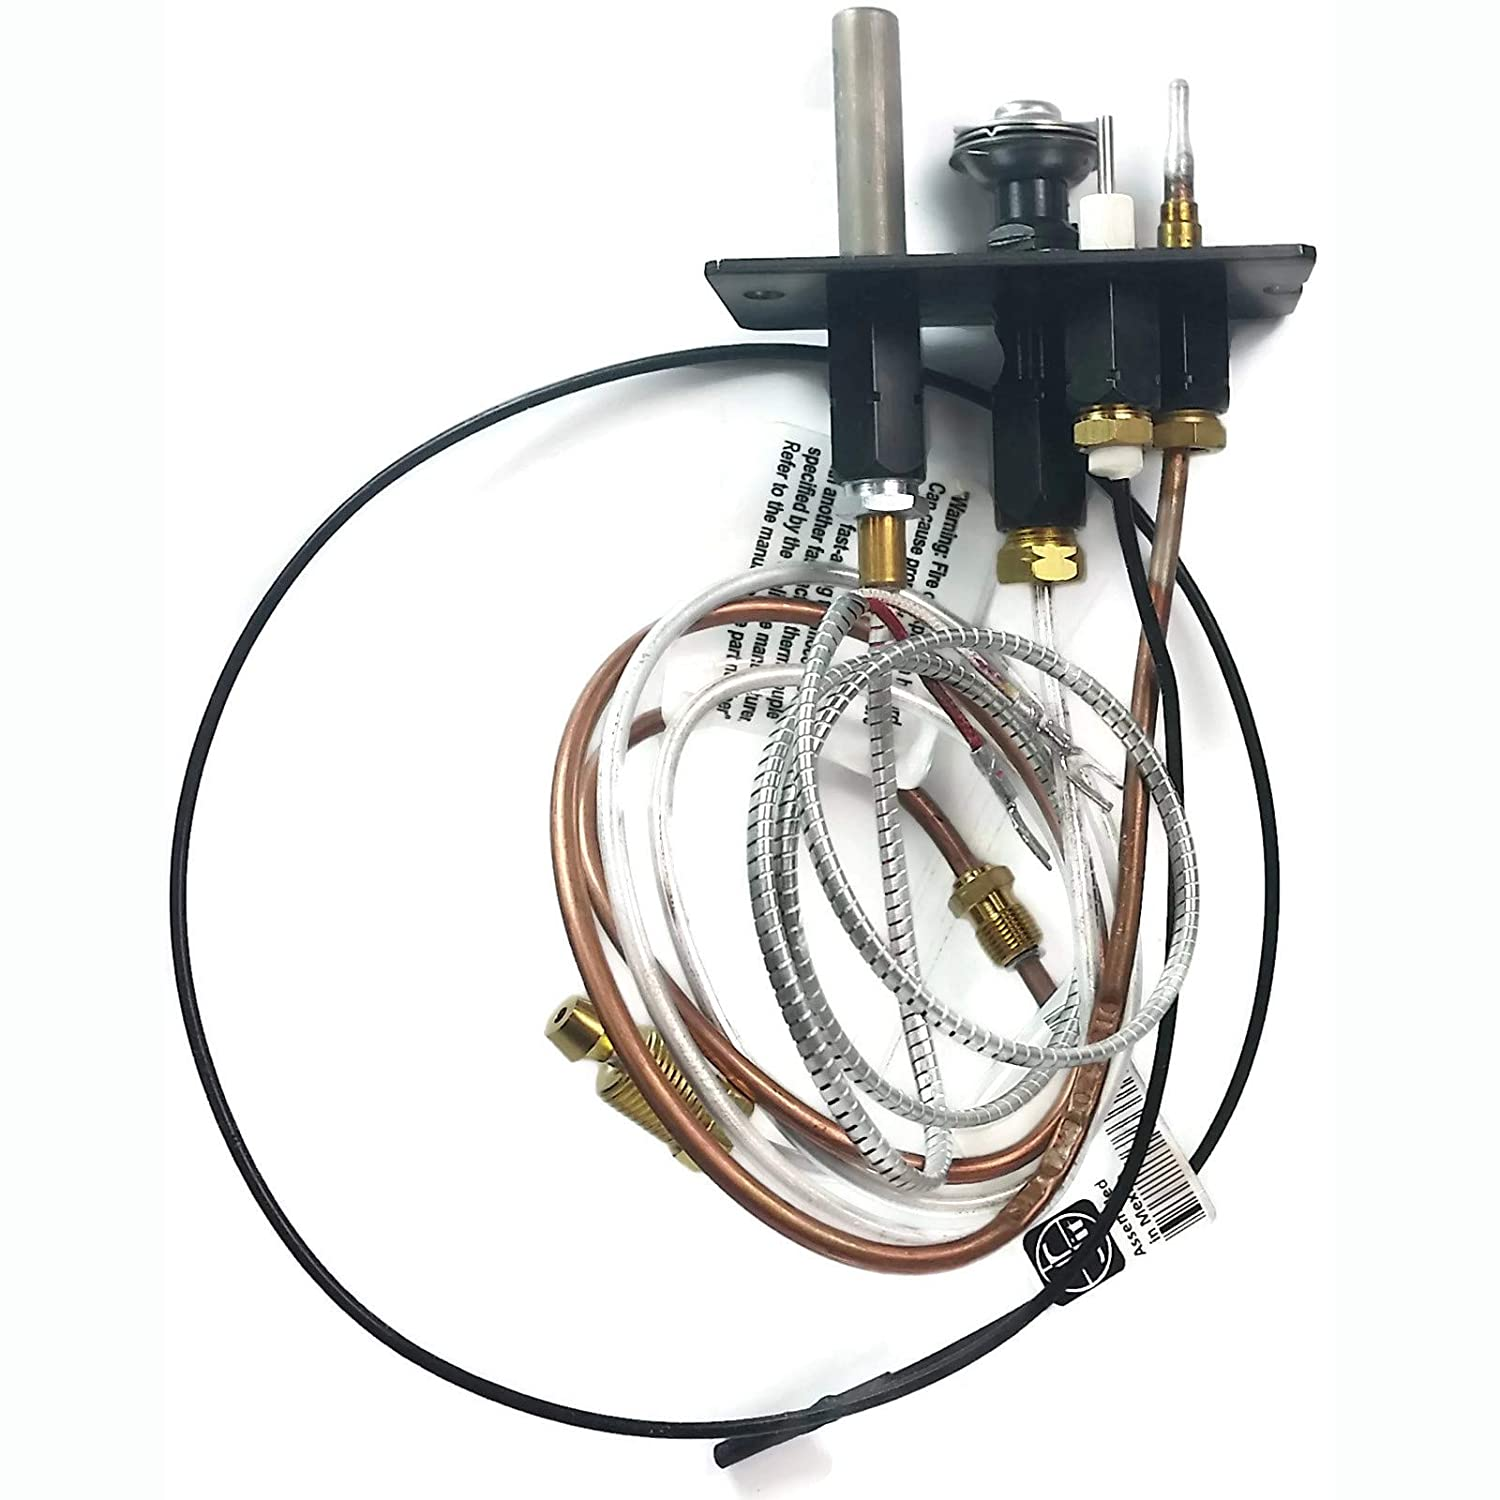 OEM Majestic 10002265 Replacement Propane Gas 3 Way Pilot Assembly for B-Vent and Direct Vent Fireplaces with RP Valves